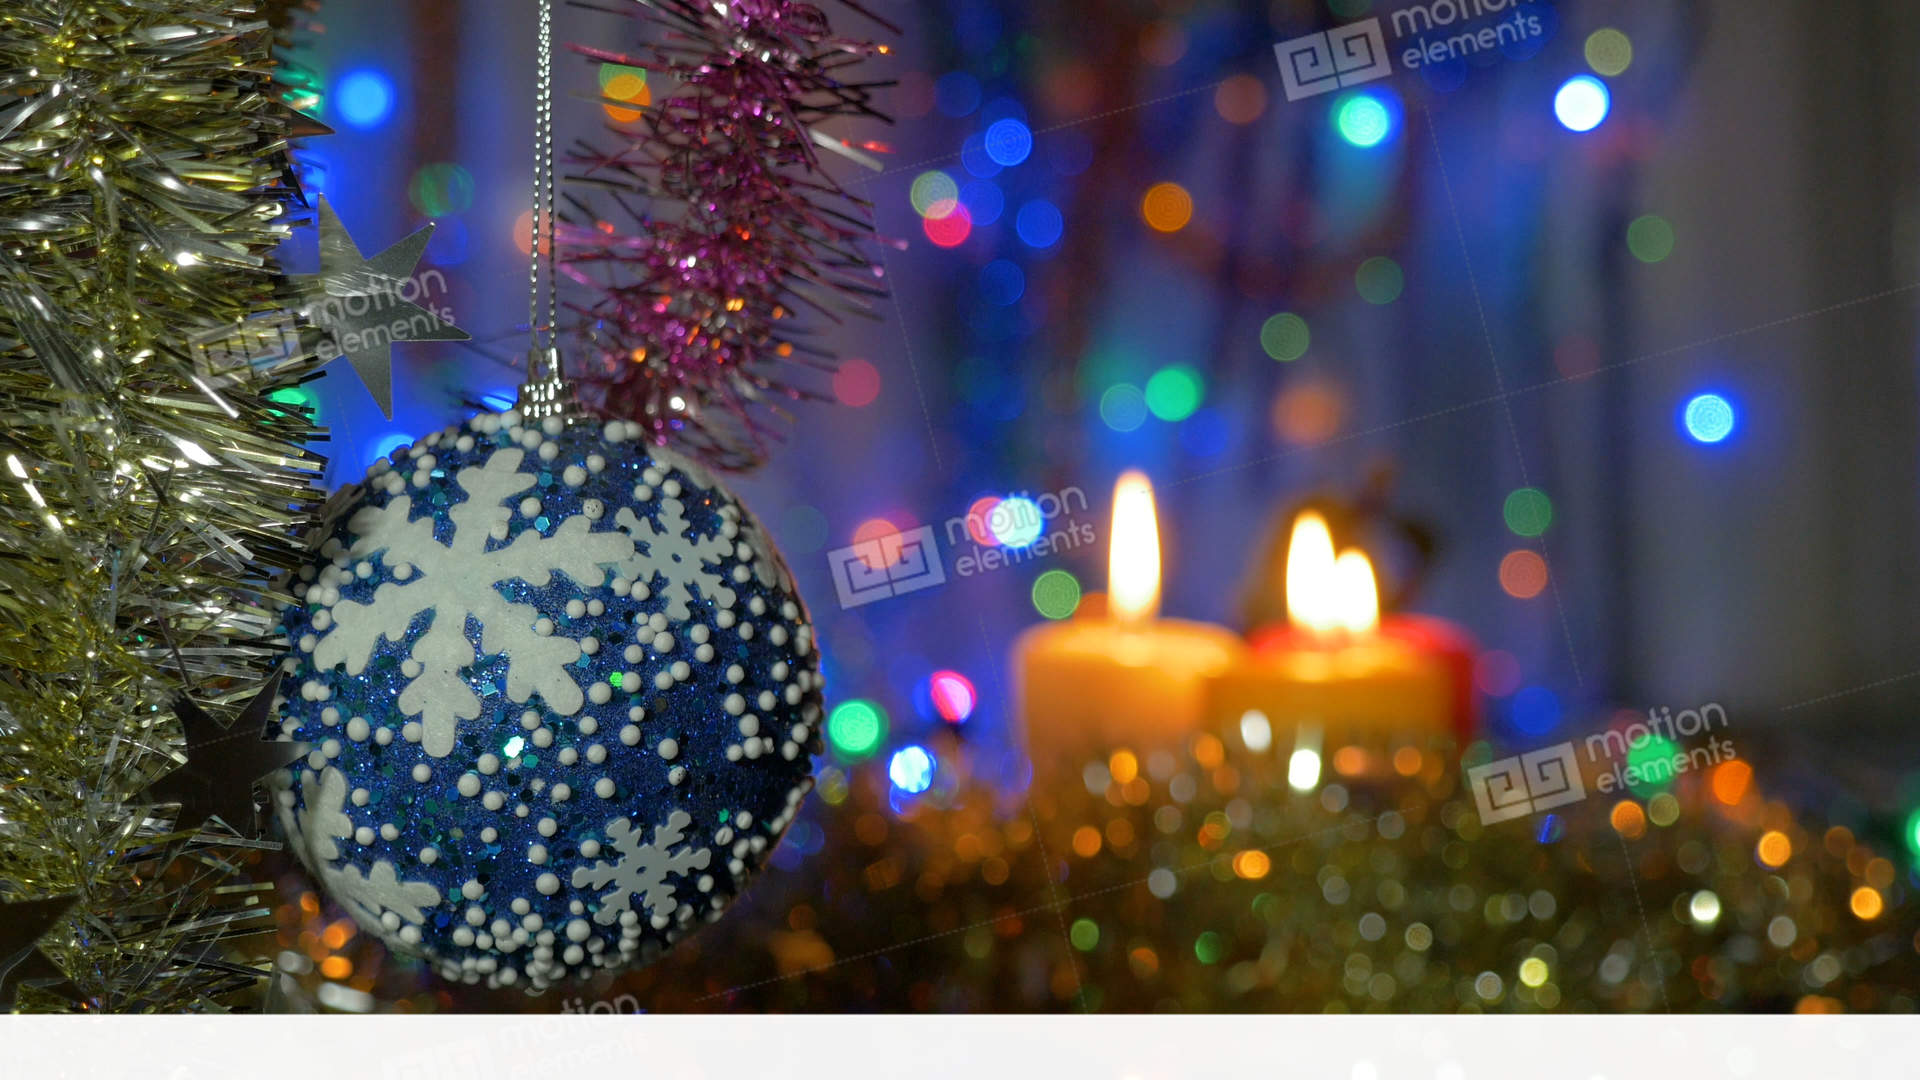 A Large Blue Ball Hangs On The Christmas Tree Blurred Background